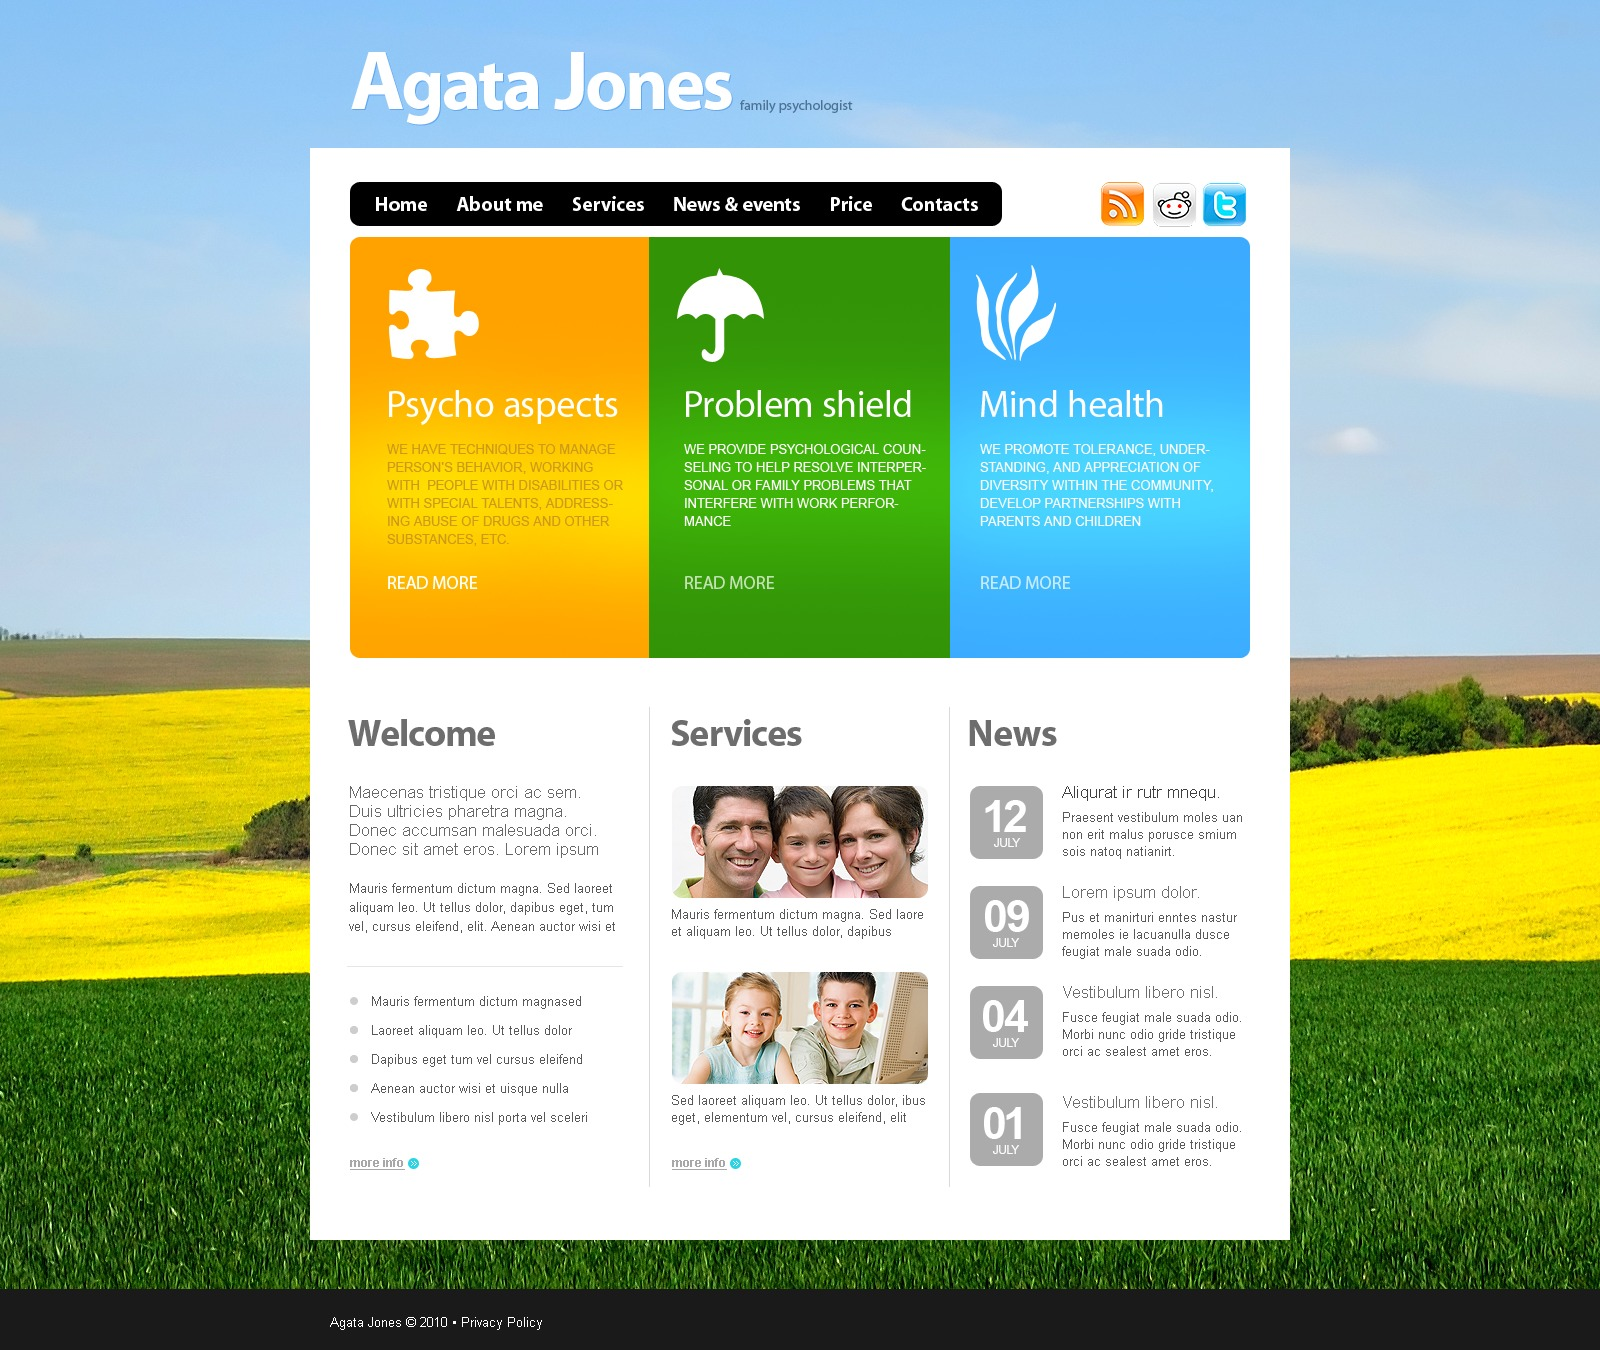 The Agata Jones Family PSD Design 54065, one of the best PSD templates of its kind (family, medical, wide), also known as Agata Jones family PSD template, psychologist PSD template, psychological PSD template, psychology PSD template, private mental PSD template, stress PSD template, anxiety PSD template, disorder PSD template, mood PSD template, trauma PSD template, abuse PSD template, health PSD template, private illness PSD template, specialist PSD template, confidentiality and related with Agata Jones family, psychologist, psychological, psychology, private mental, stress, anxiety, disorder, mood, trauma, abuse, health, private illness, specialist, confidentiality, etc.